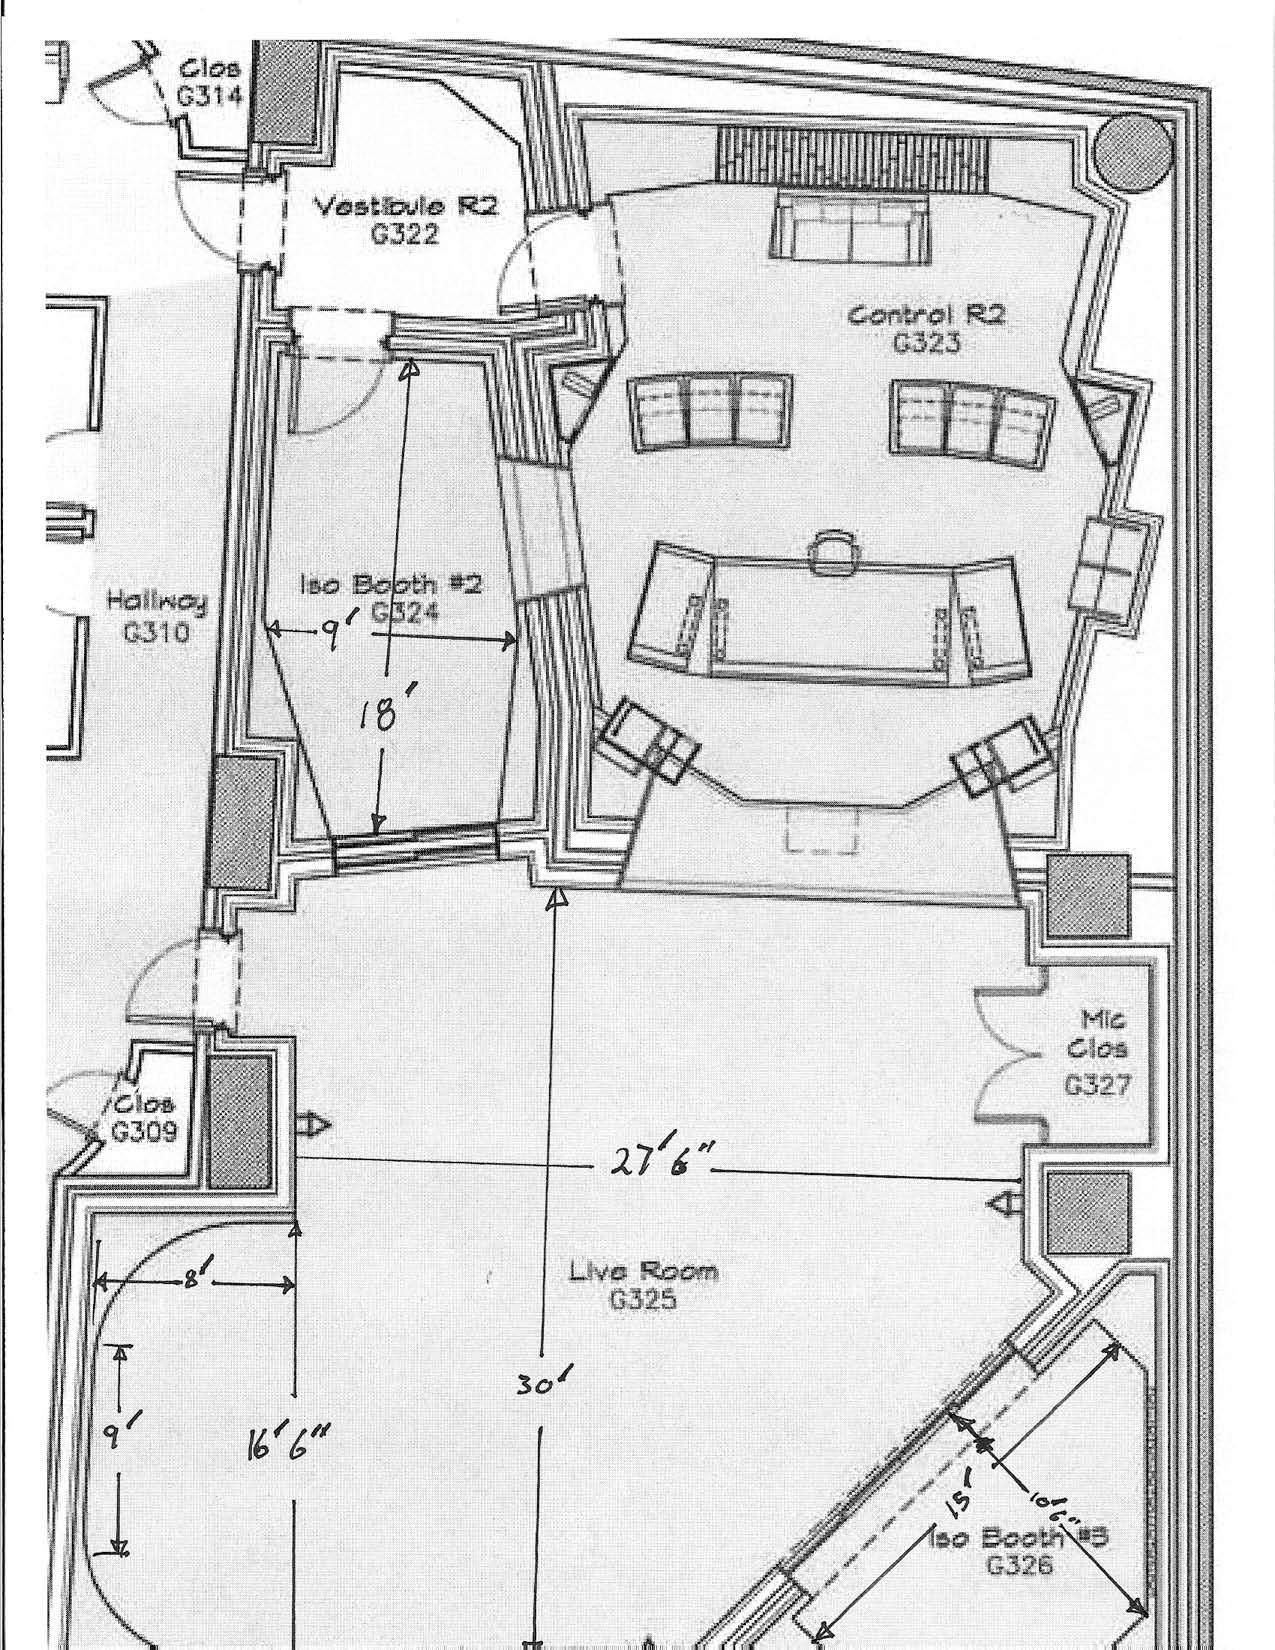 music studio plan - Google Search | Recording studio | Pinterest ...